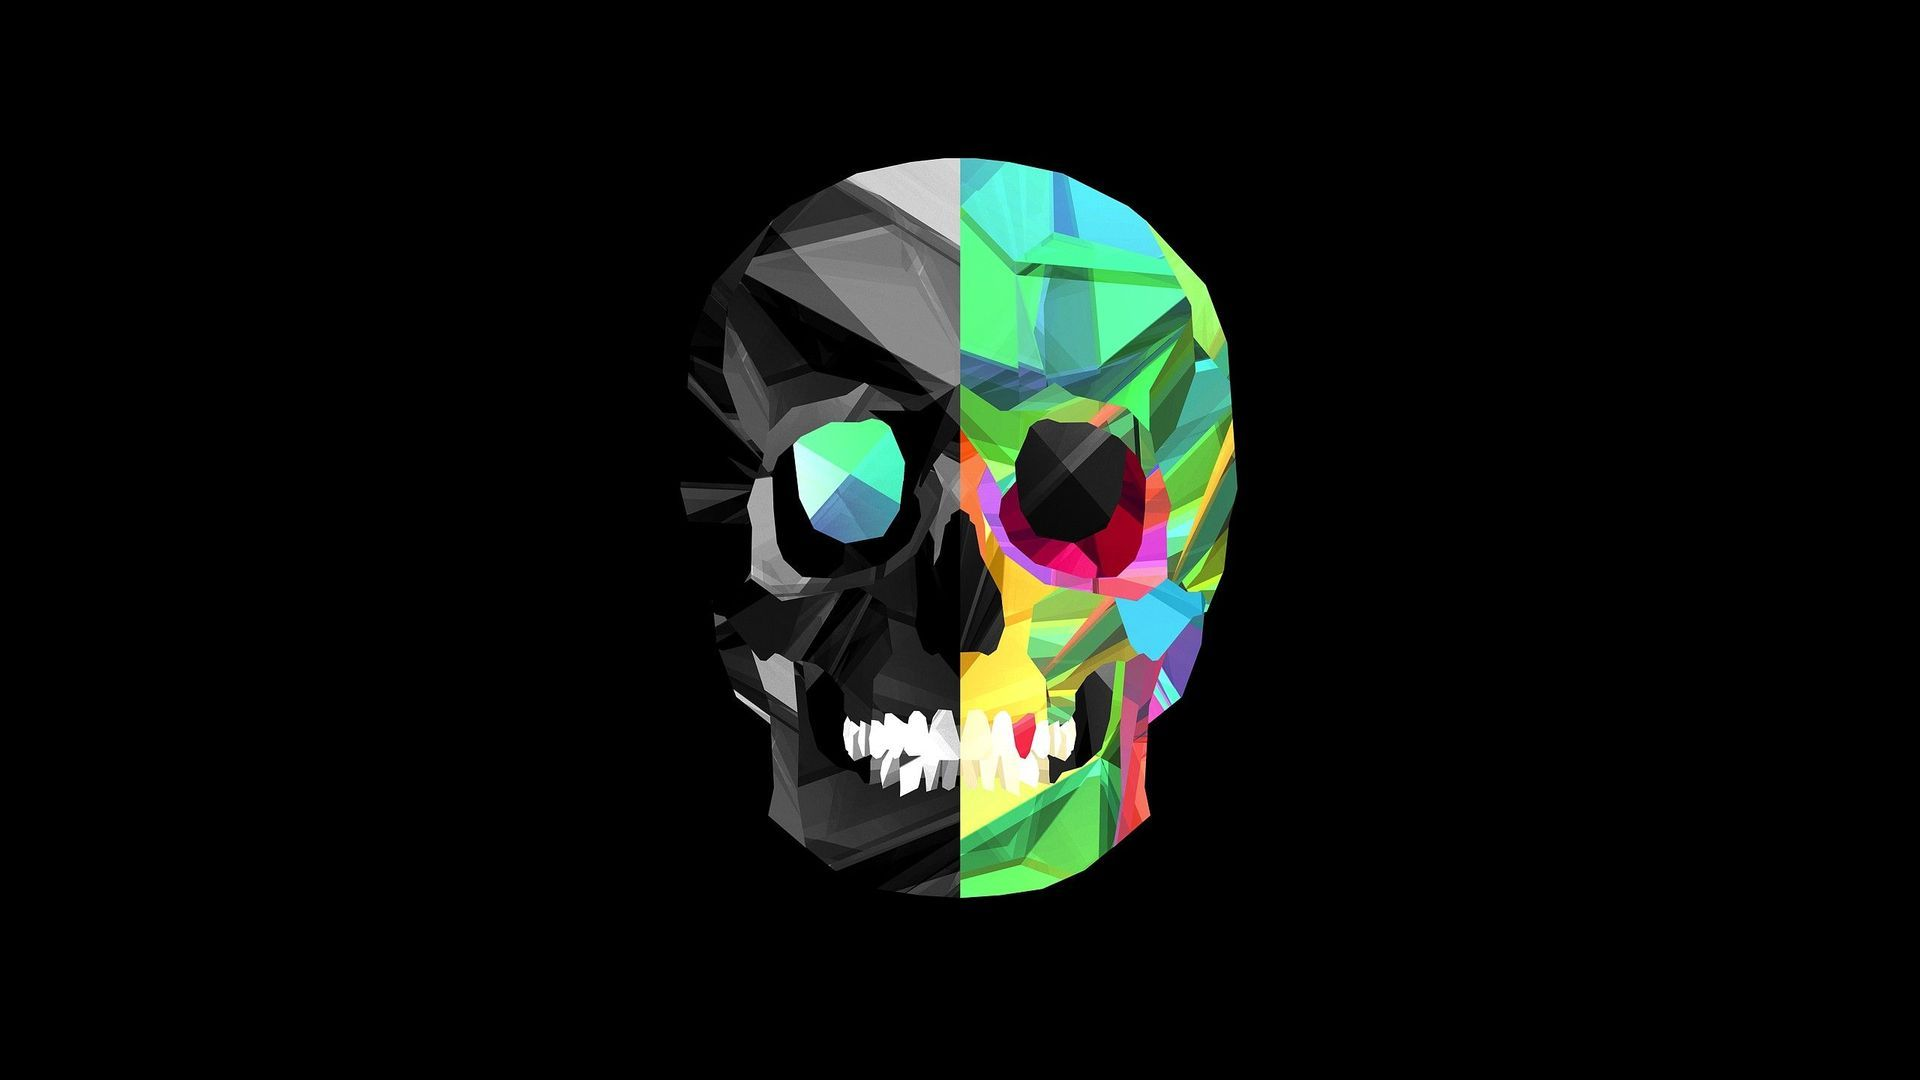 skull wallpapers high quality resolution is cool wallpapers | i